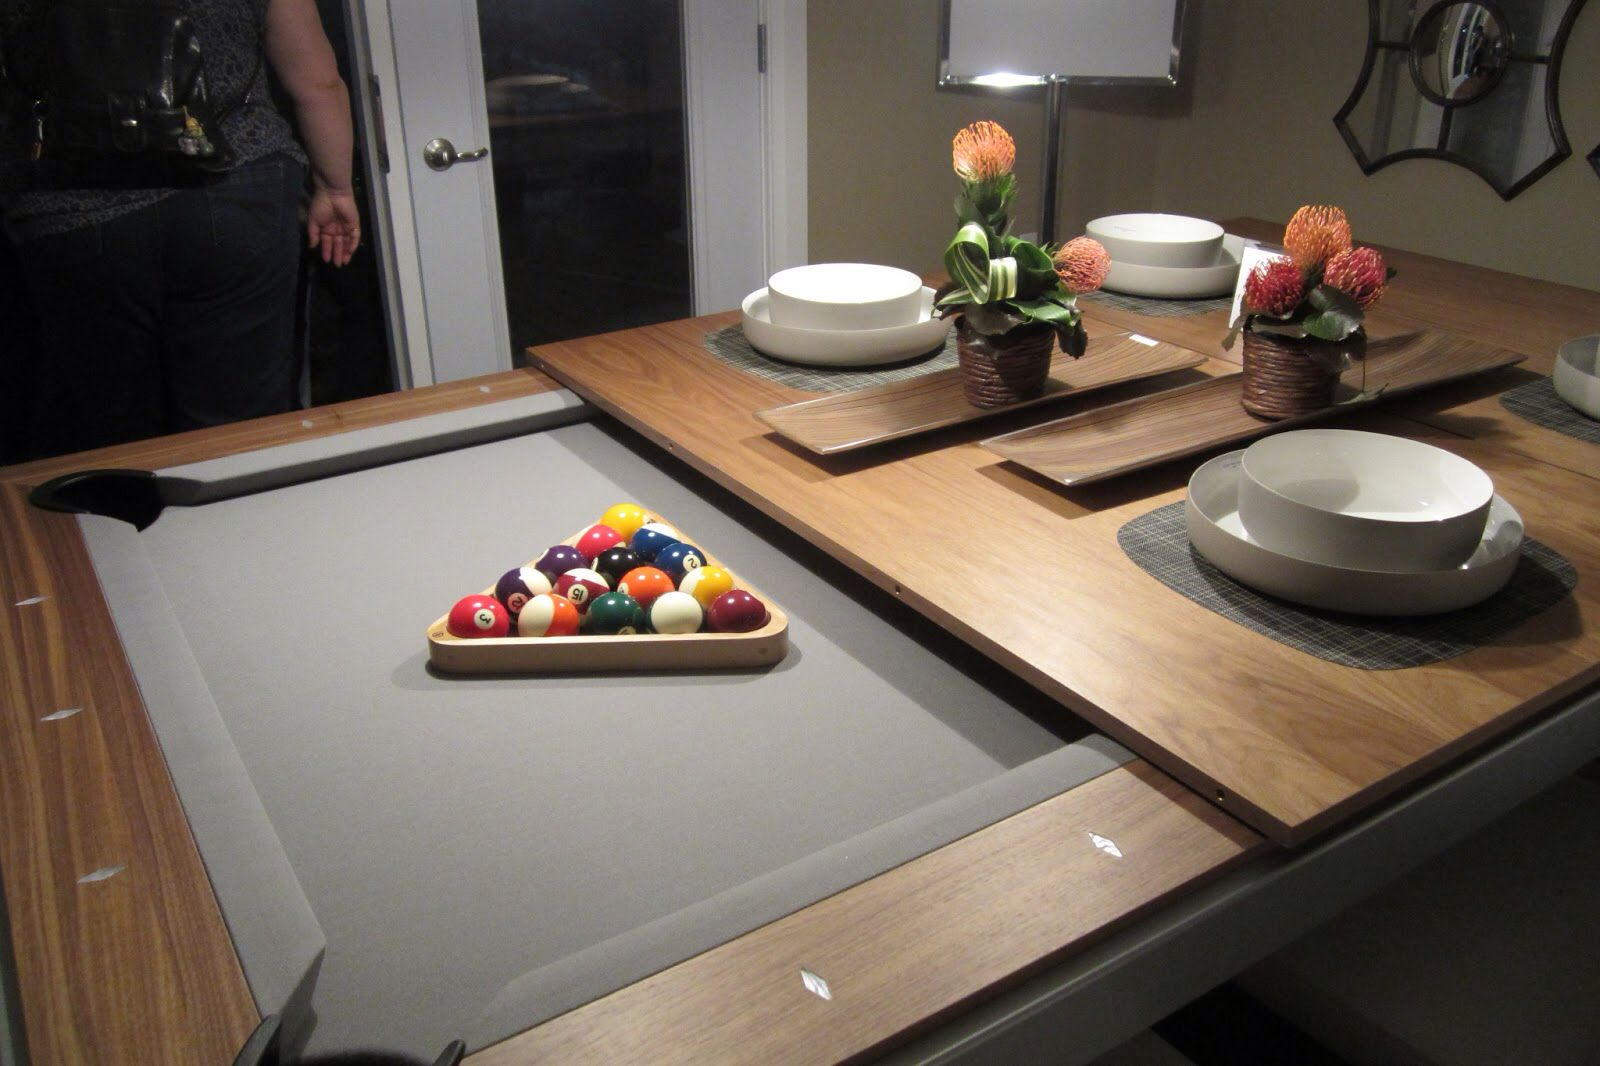 Pool Table Dining Top AWESOME! That Is What I Want For Ours To Convert Our